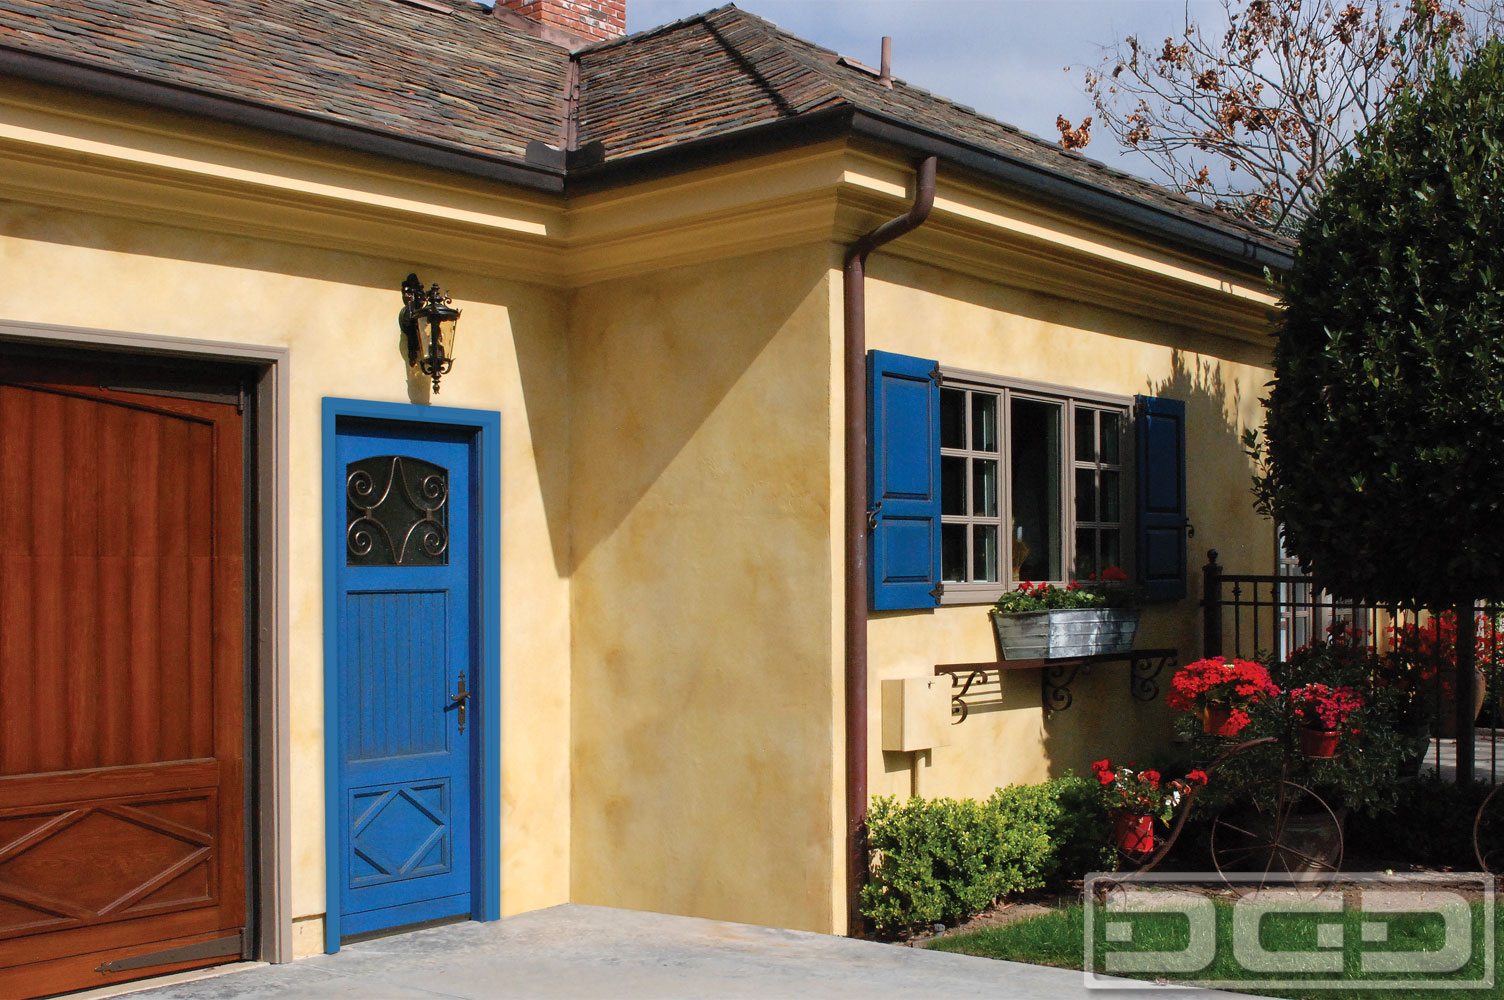 Garage And Front Doors That Match Custom French Architectural European Entry Doors Shipped